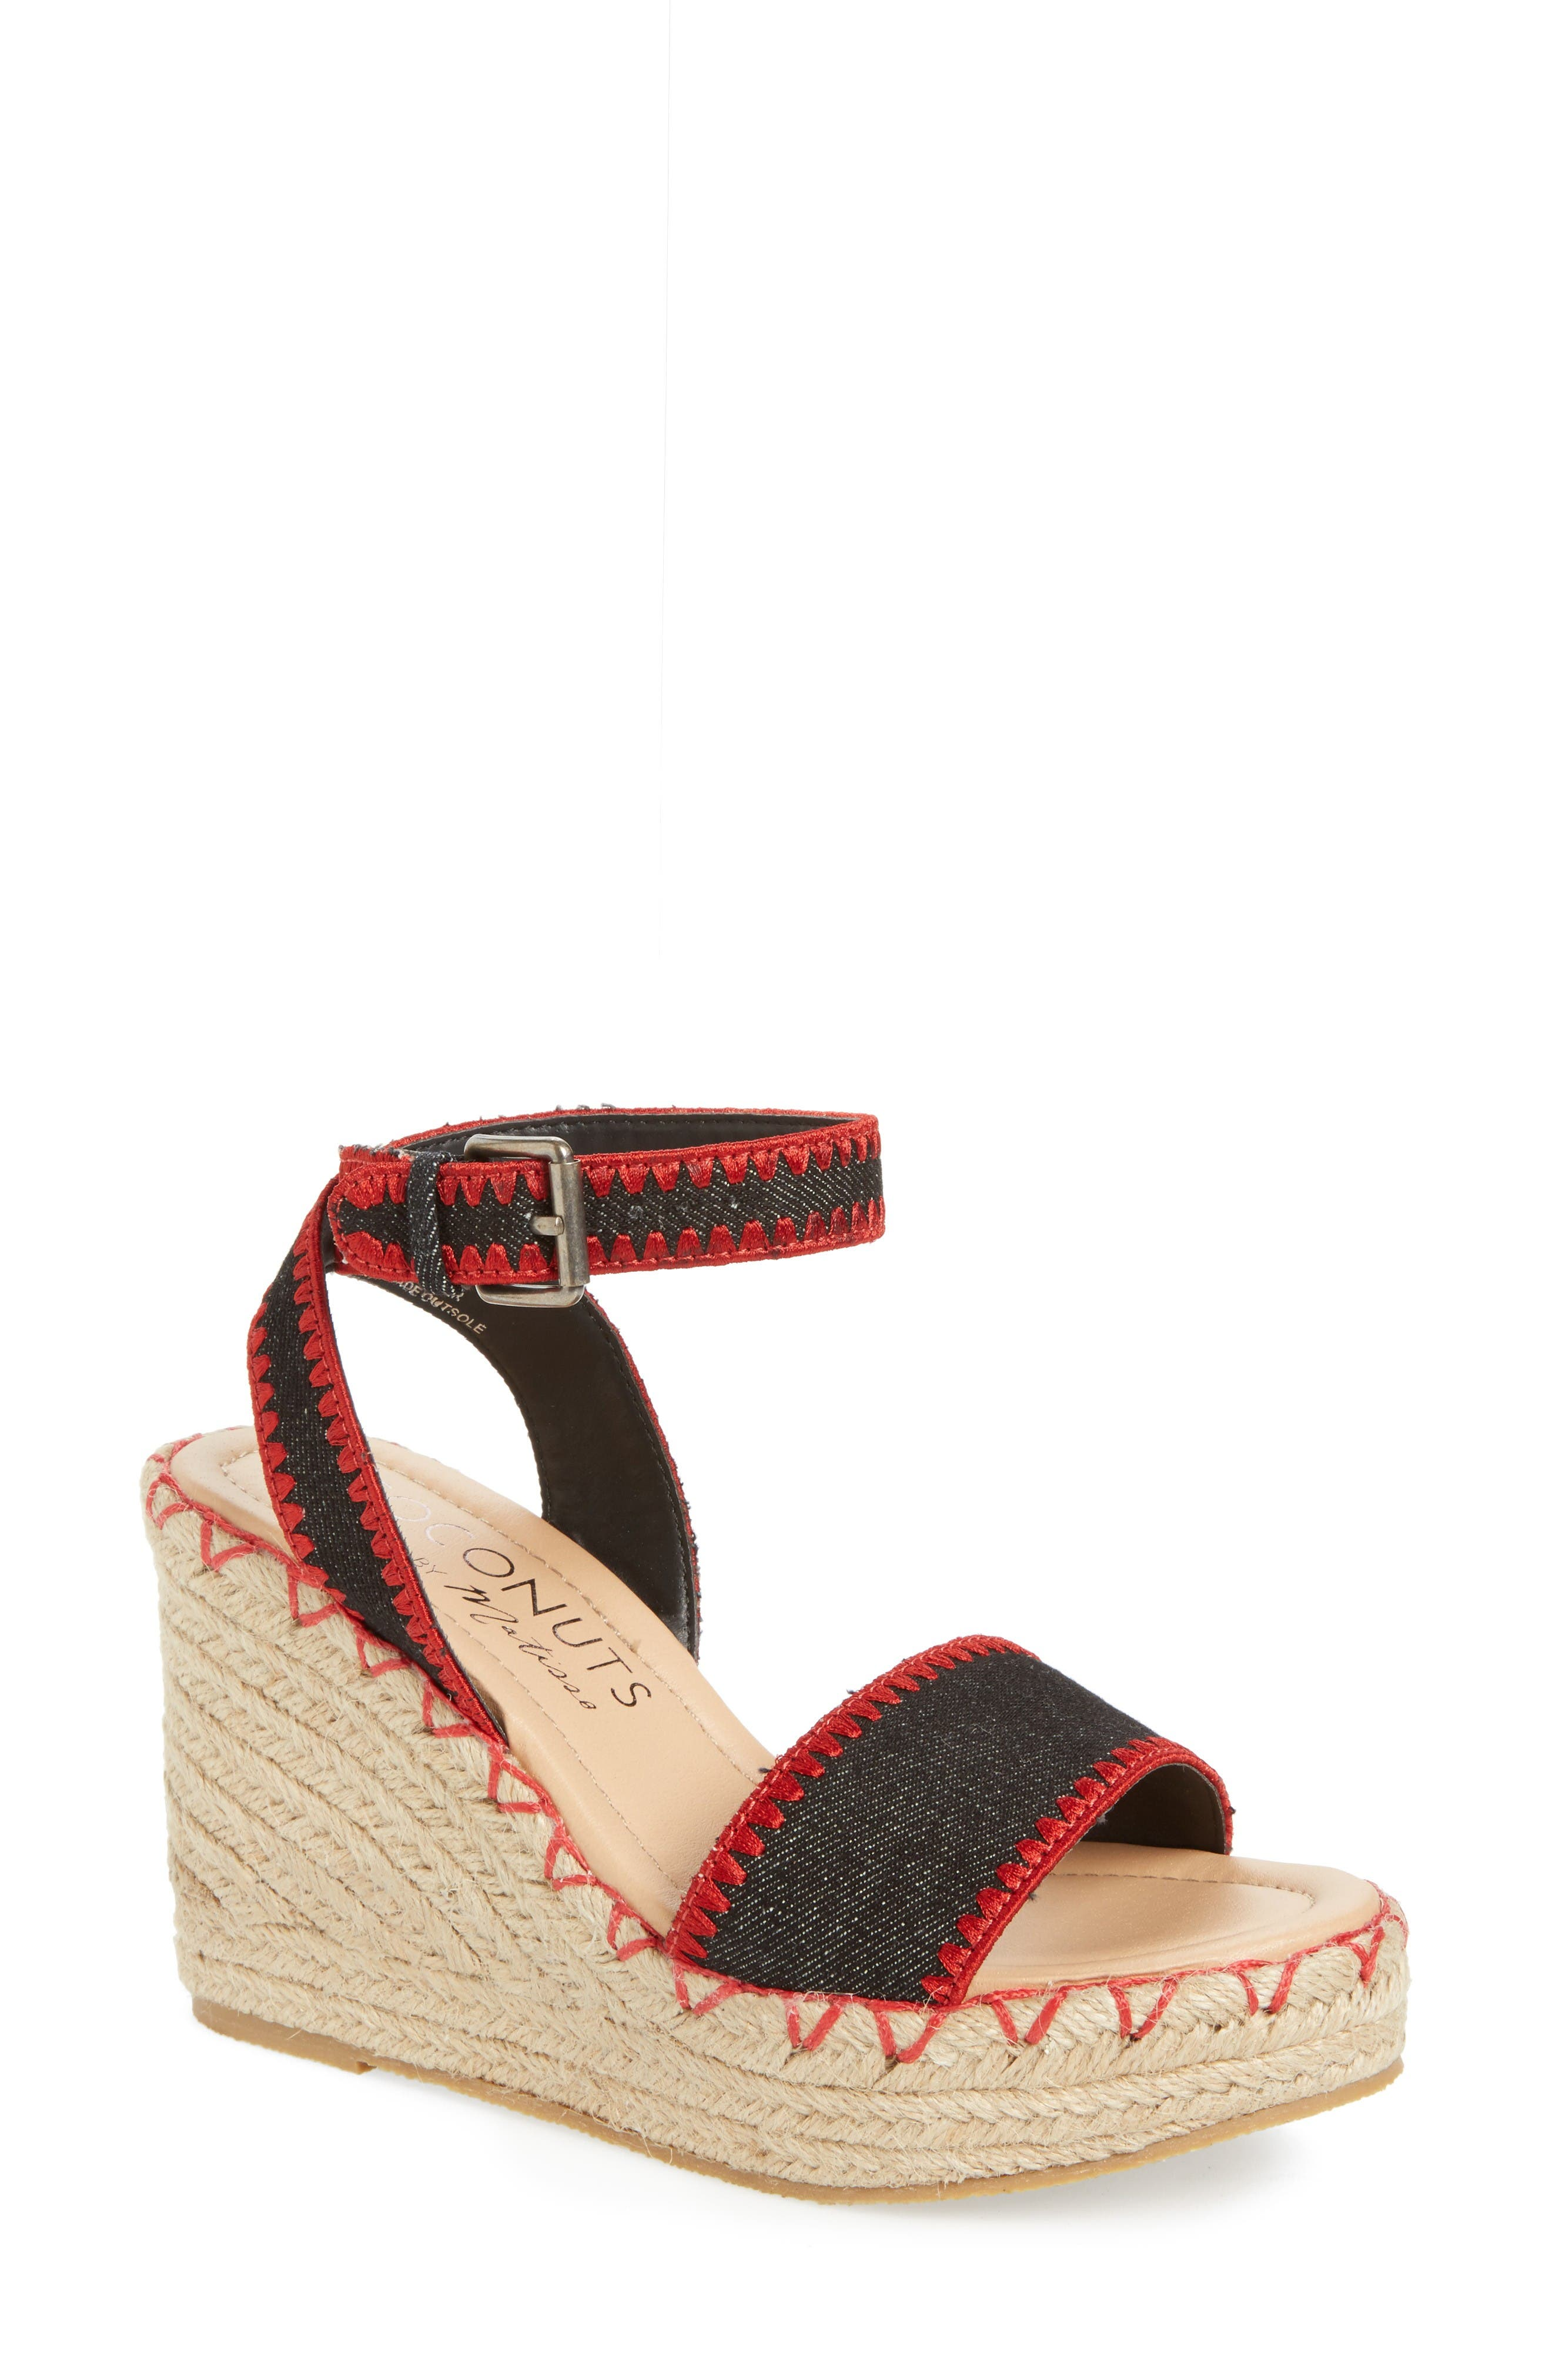 Coconuts by Matisse Frenchie Wedge Sandal,                             Main thumbnail 1, color,                             Black Fabric